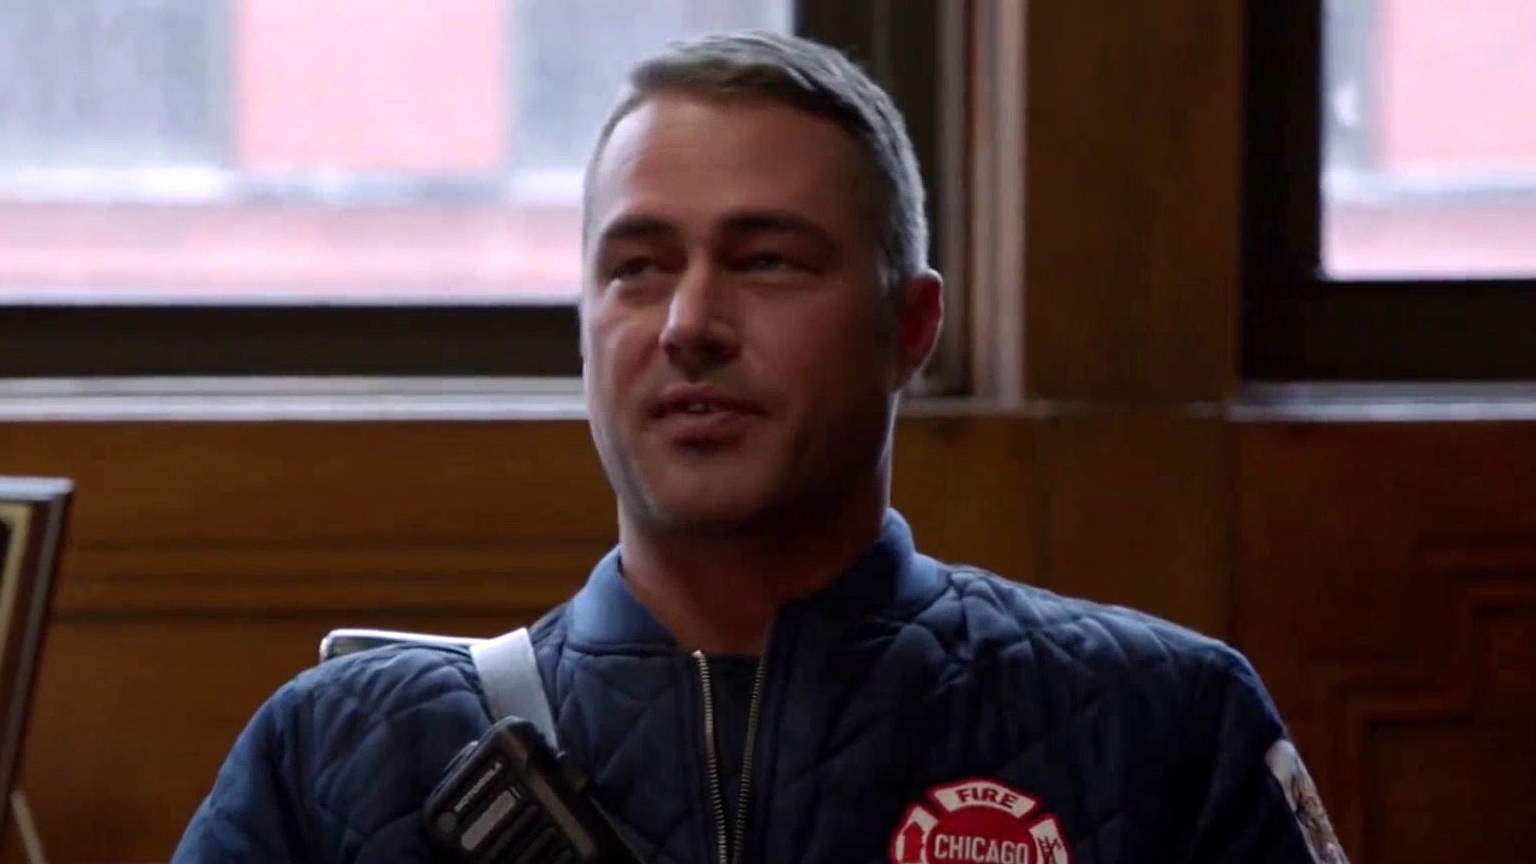 Chicago Fire: Severide's Done Some Digging On Gorsch, And It Looks Like He's In Trouble